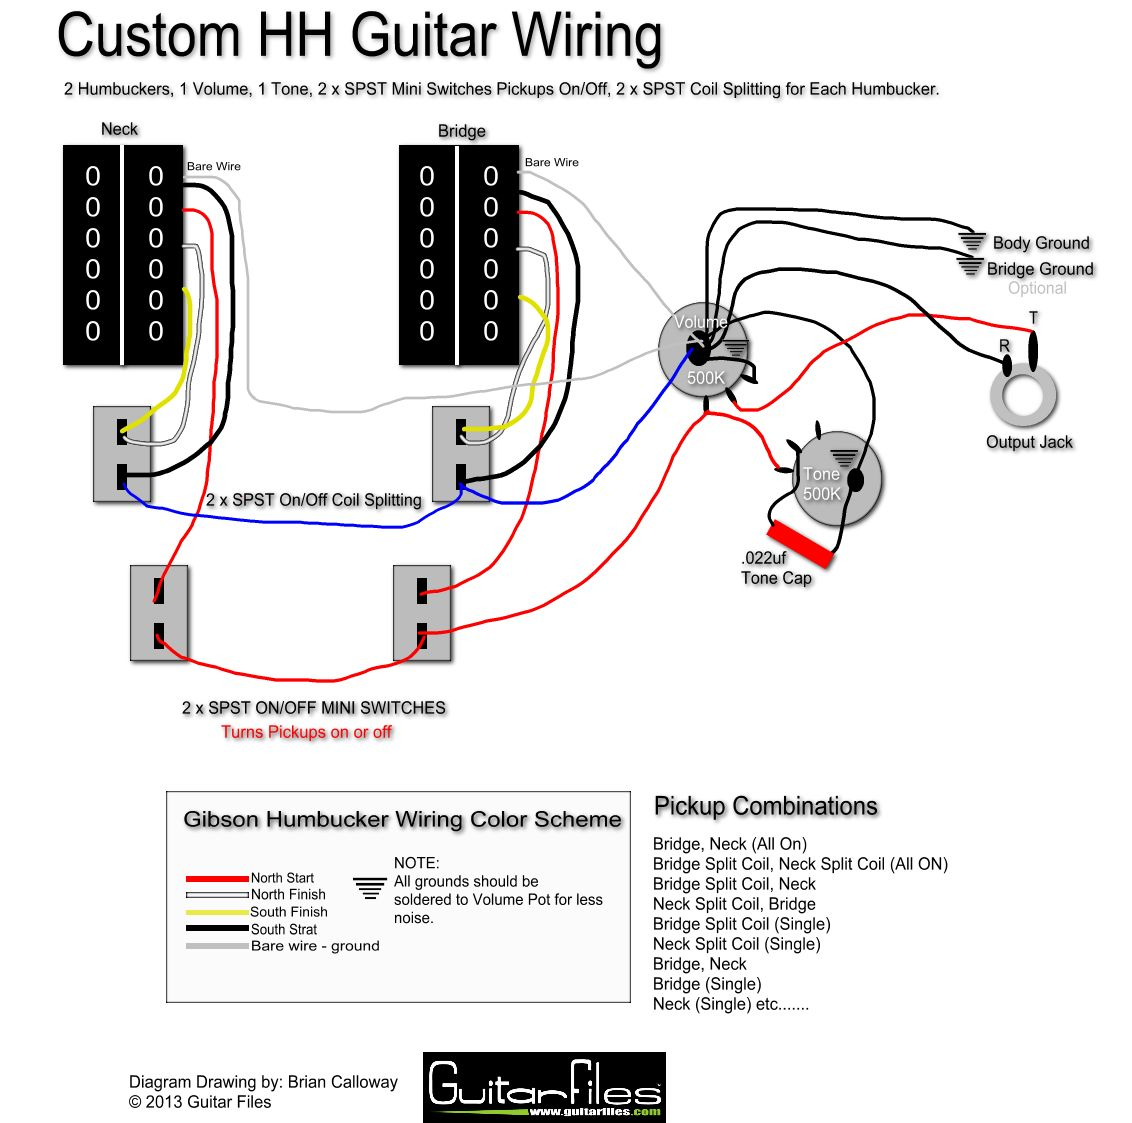 Custom Electric Guitar Wiring Diagrams Blog About Diagram For Amp Hh With Spst Coil Splitting And Switching Amps